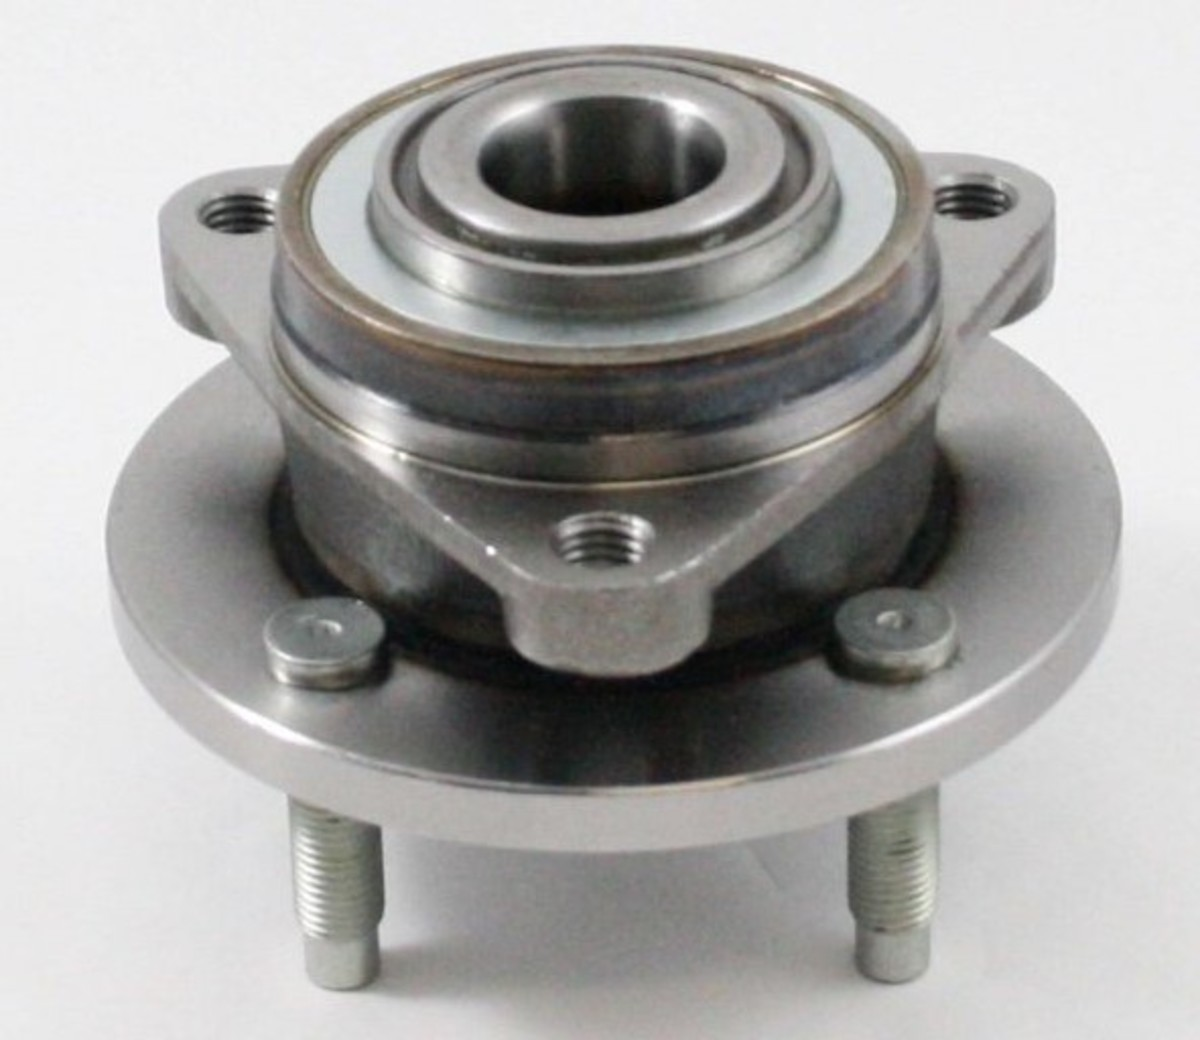 '03 - '07 Saturn Ion Front Wheel Hub and Bearing Replacement (With Video)